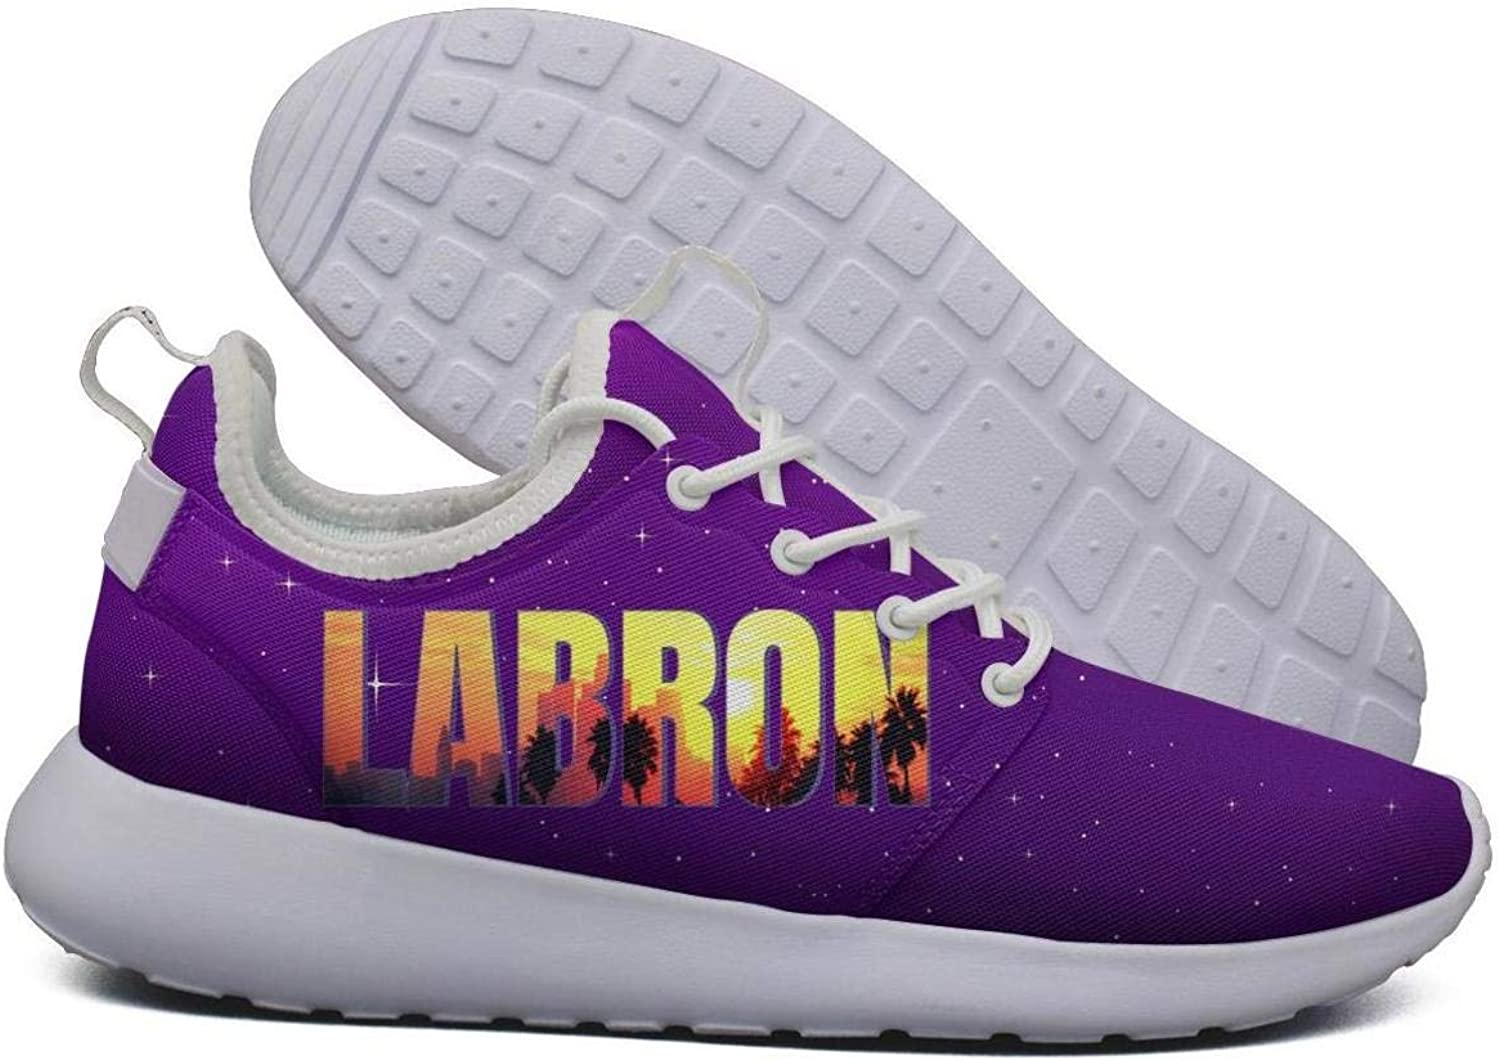 Womens Roshe Two Lightweight La_Bron_Yellow_Logo_Basketball Coll Cross-Trainer mesh shoes